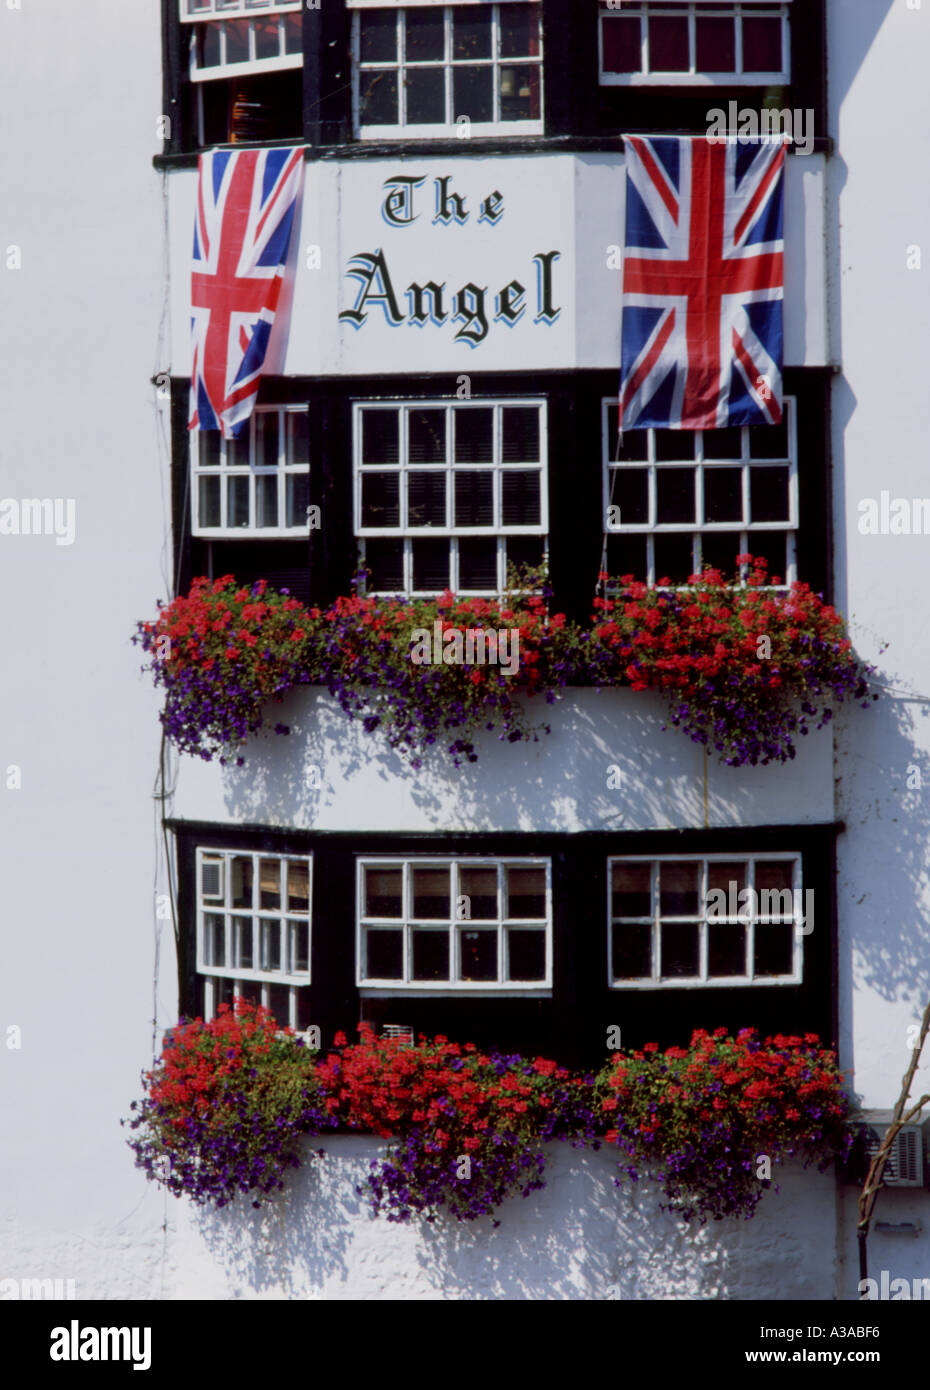 England Pub with flags - Stock Image